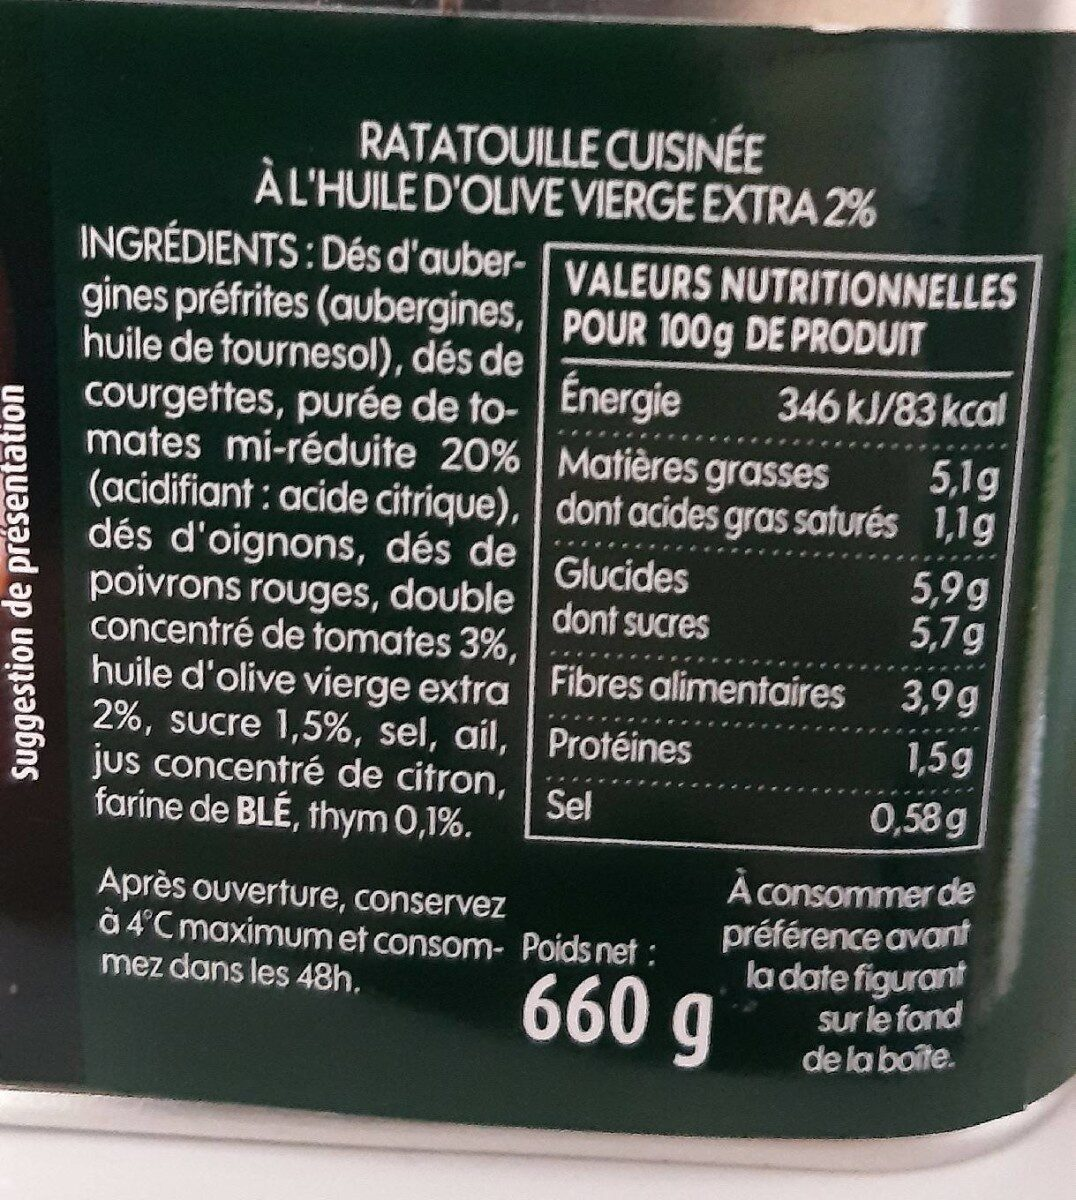 Ratatouille cuisinée à la provencale - Nutrition facts - fr